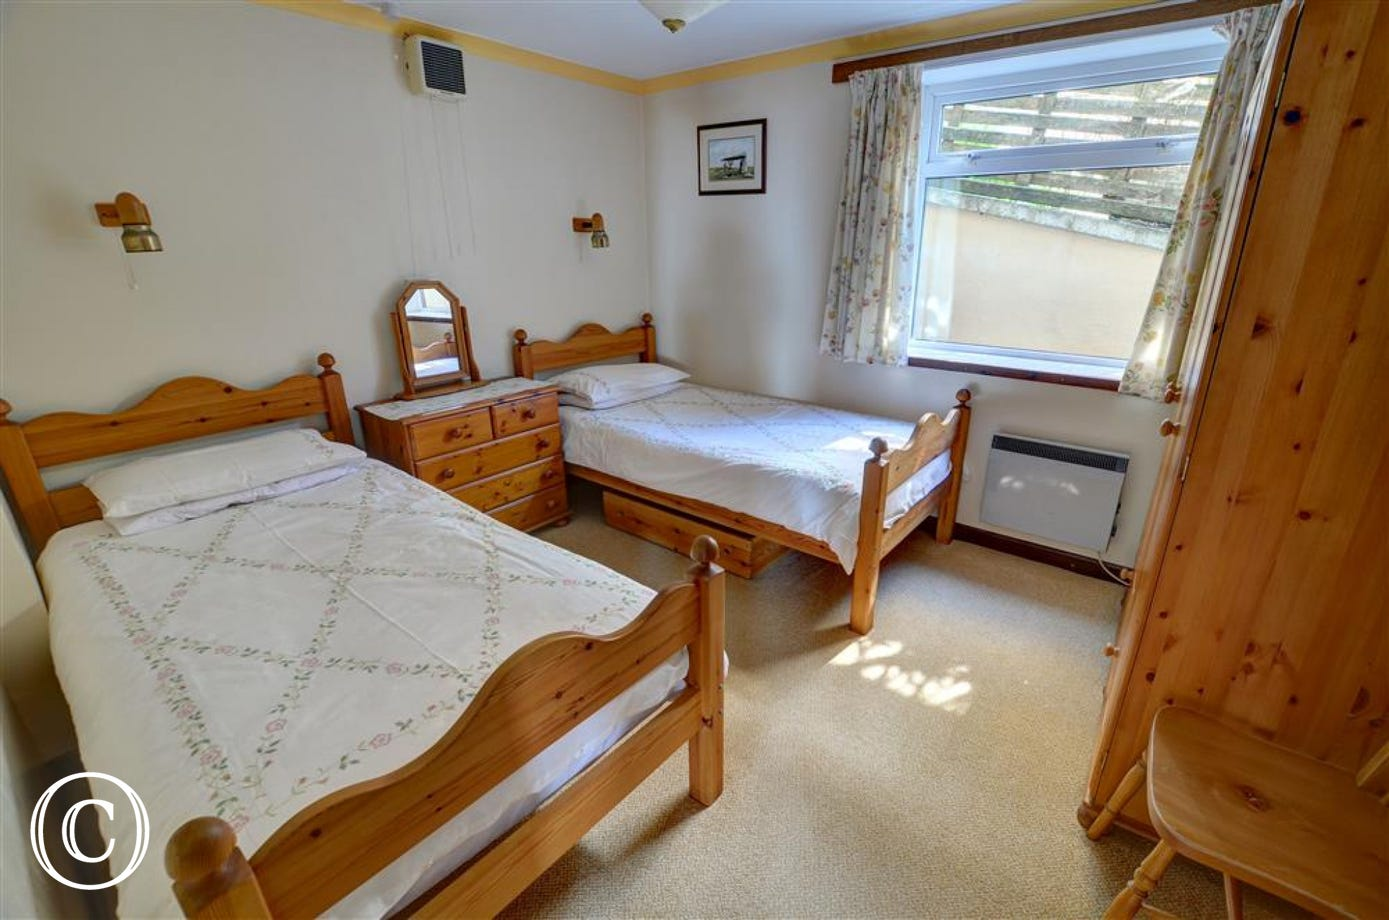 The twin bedroom is also furnished in pine